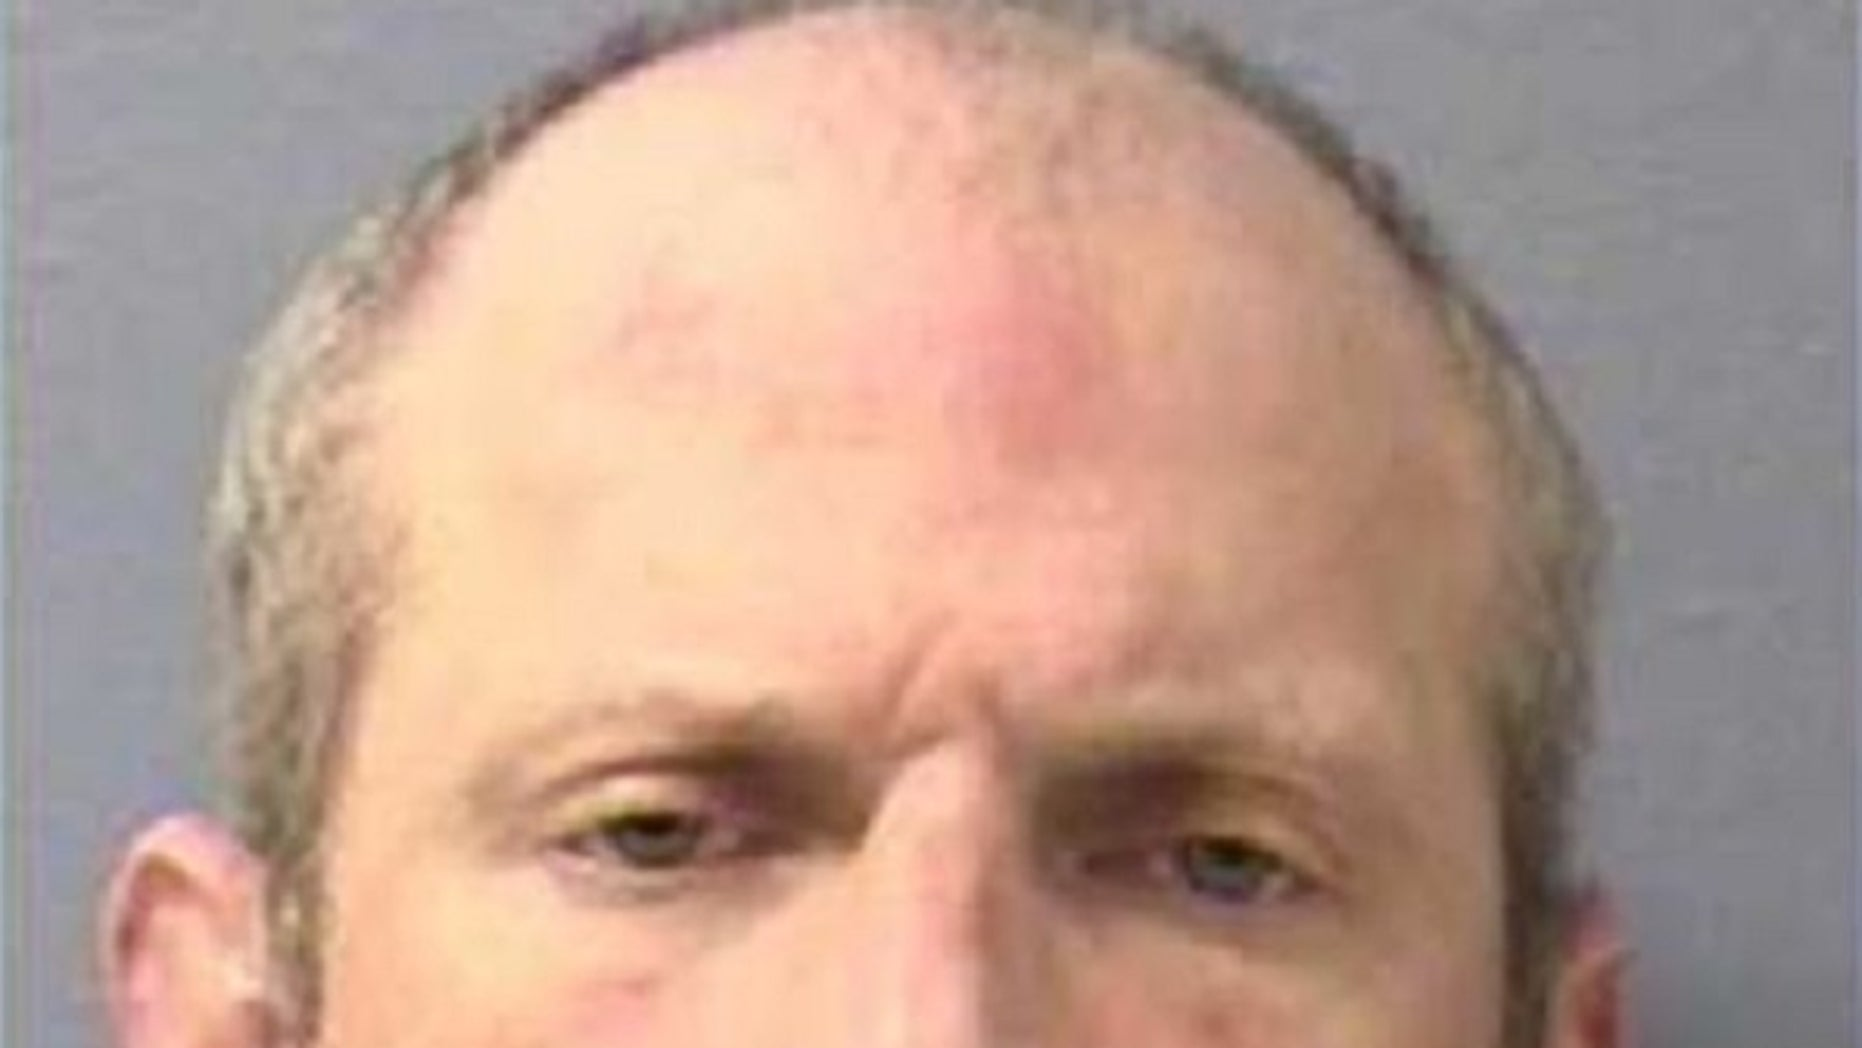 Daniel Sober, 44, was arrested for driving drunk on Saturday, around 20 miles outside of Pittsburgh, Penn.